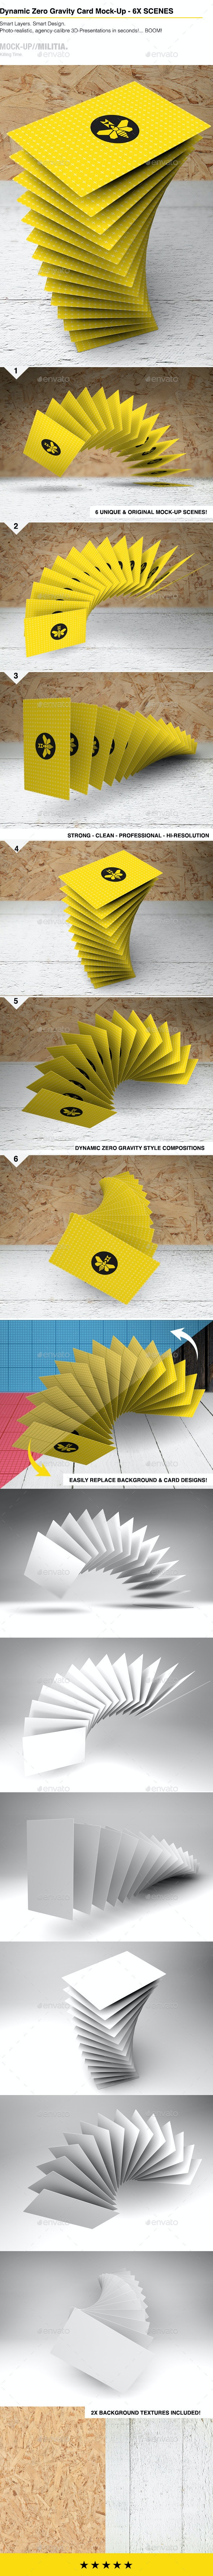 Floating | Flying | Gravity Business Card Mock-Up - Business Cards Print